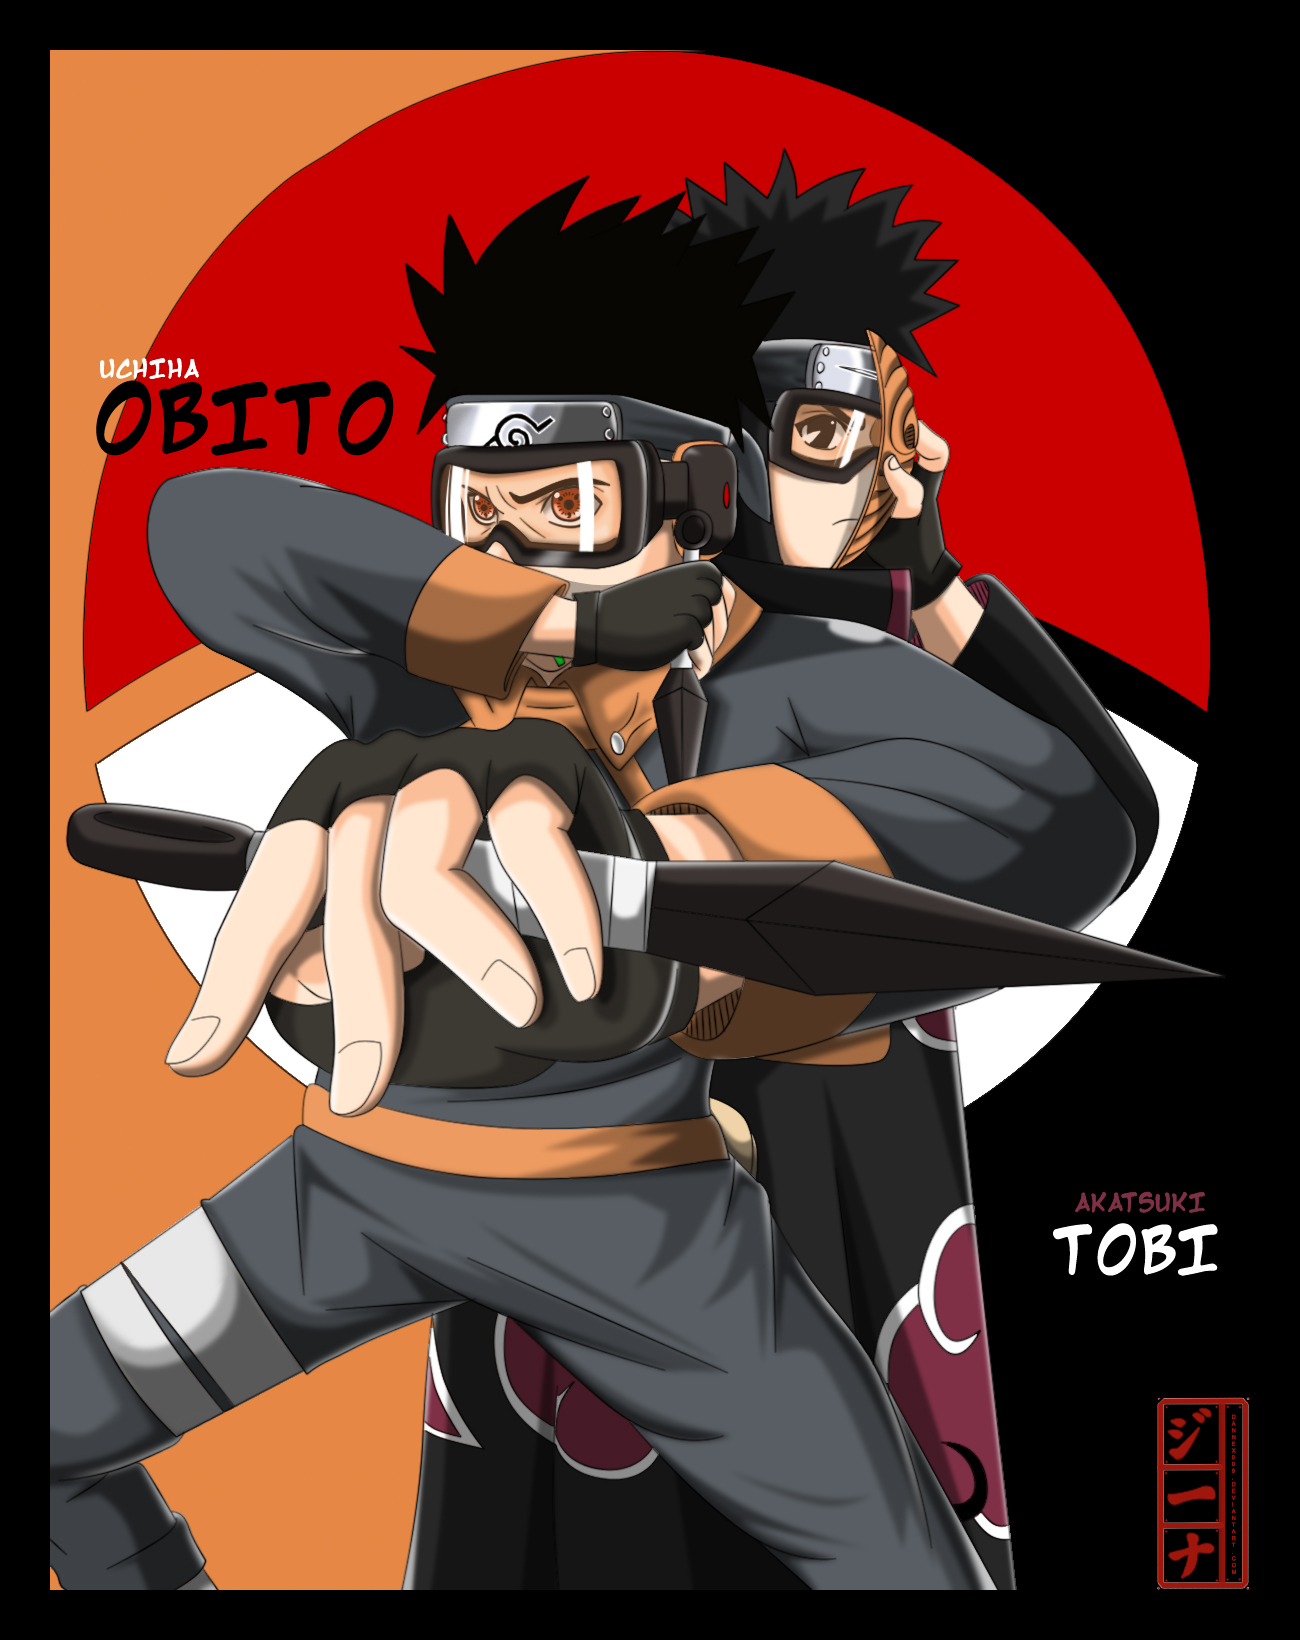 tobi aka. obito - Naruto Shippuuden Photo (452639) - Fanpop fanclubs